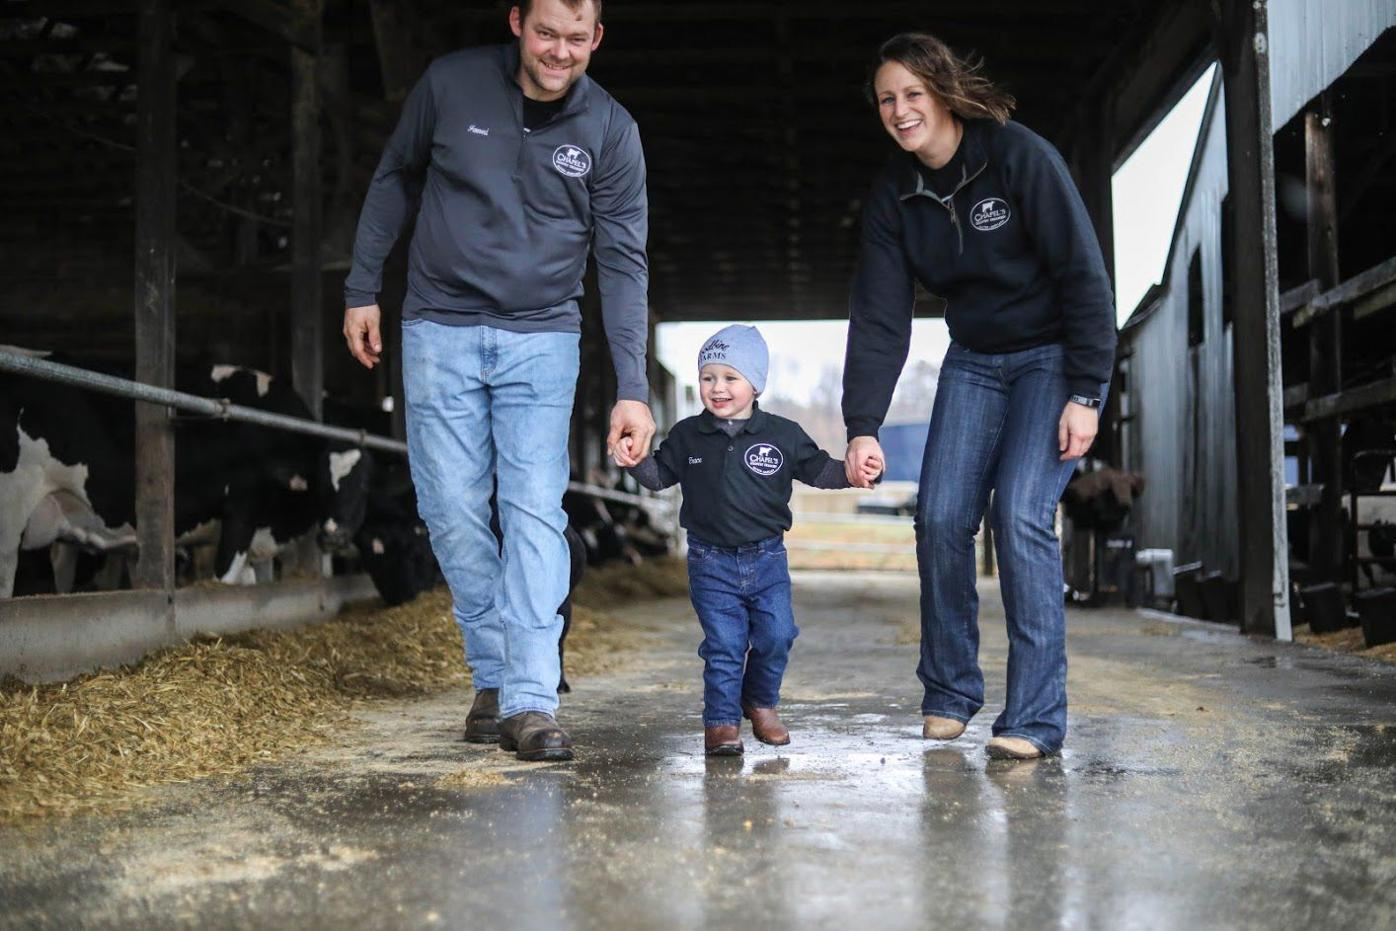 Chapel's Country Creamery offers holiday solution